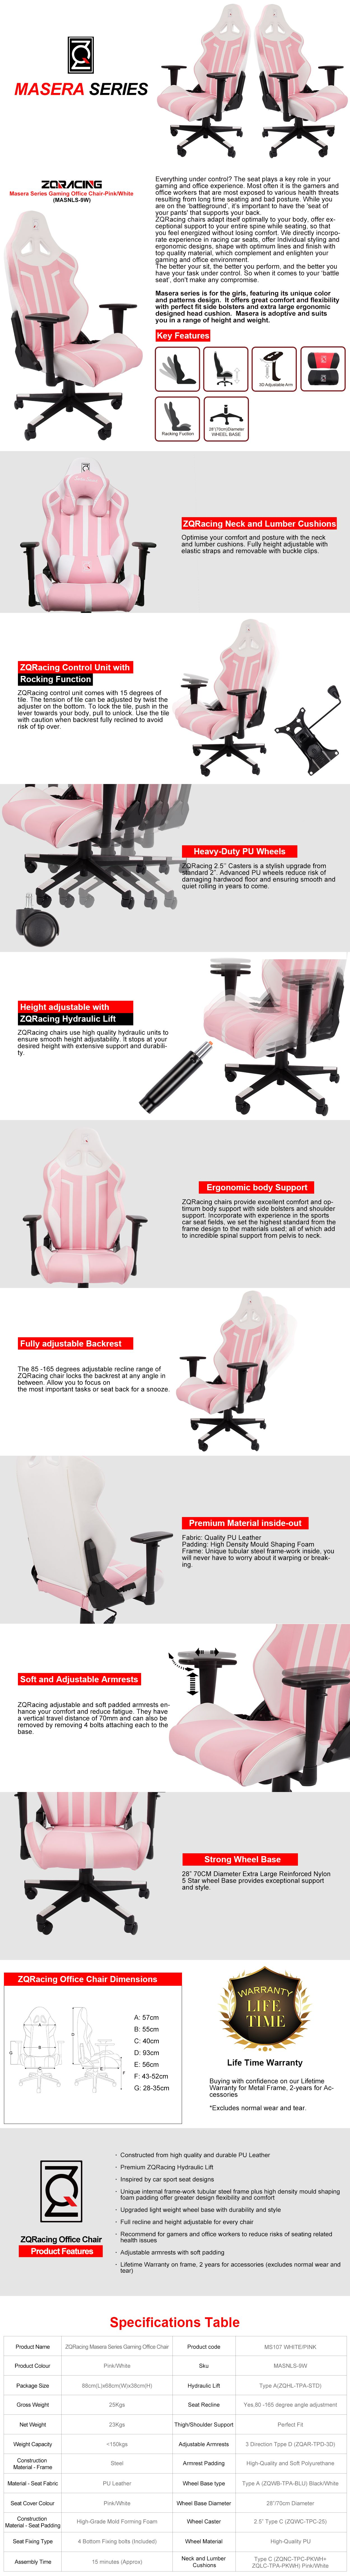 Masera Series Gaming Office ChairPink/White Office